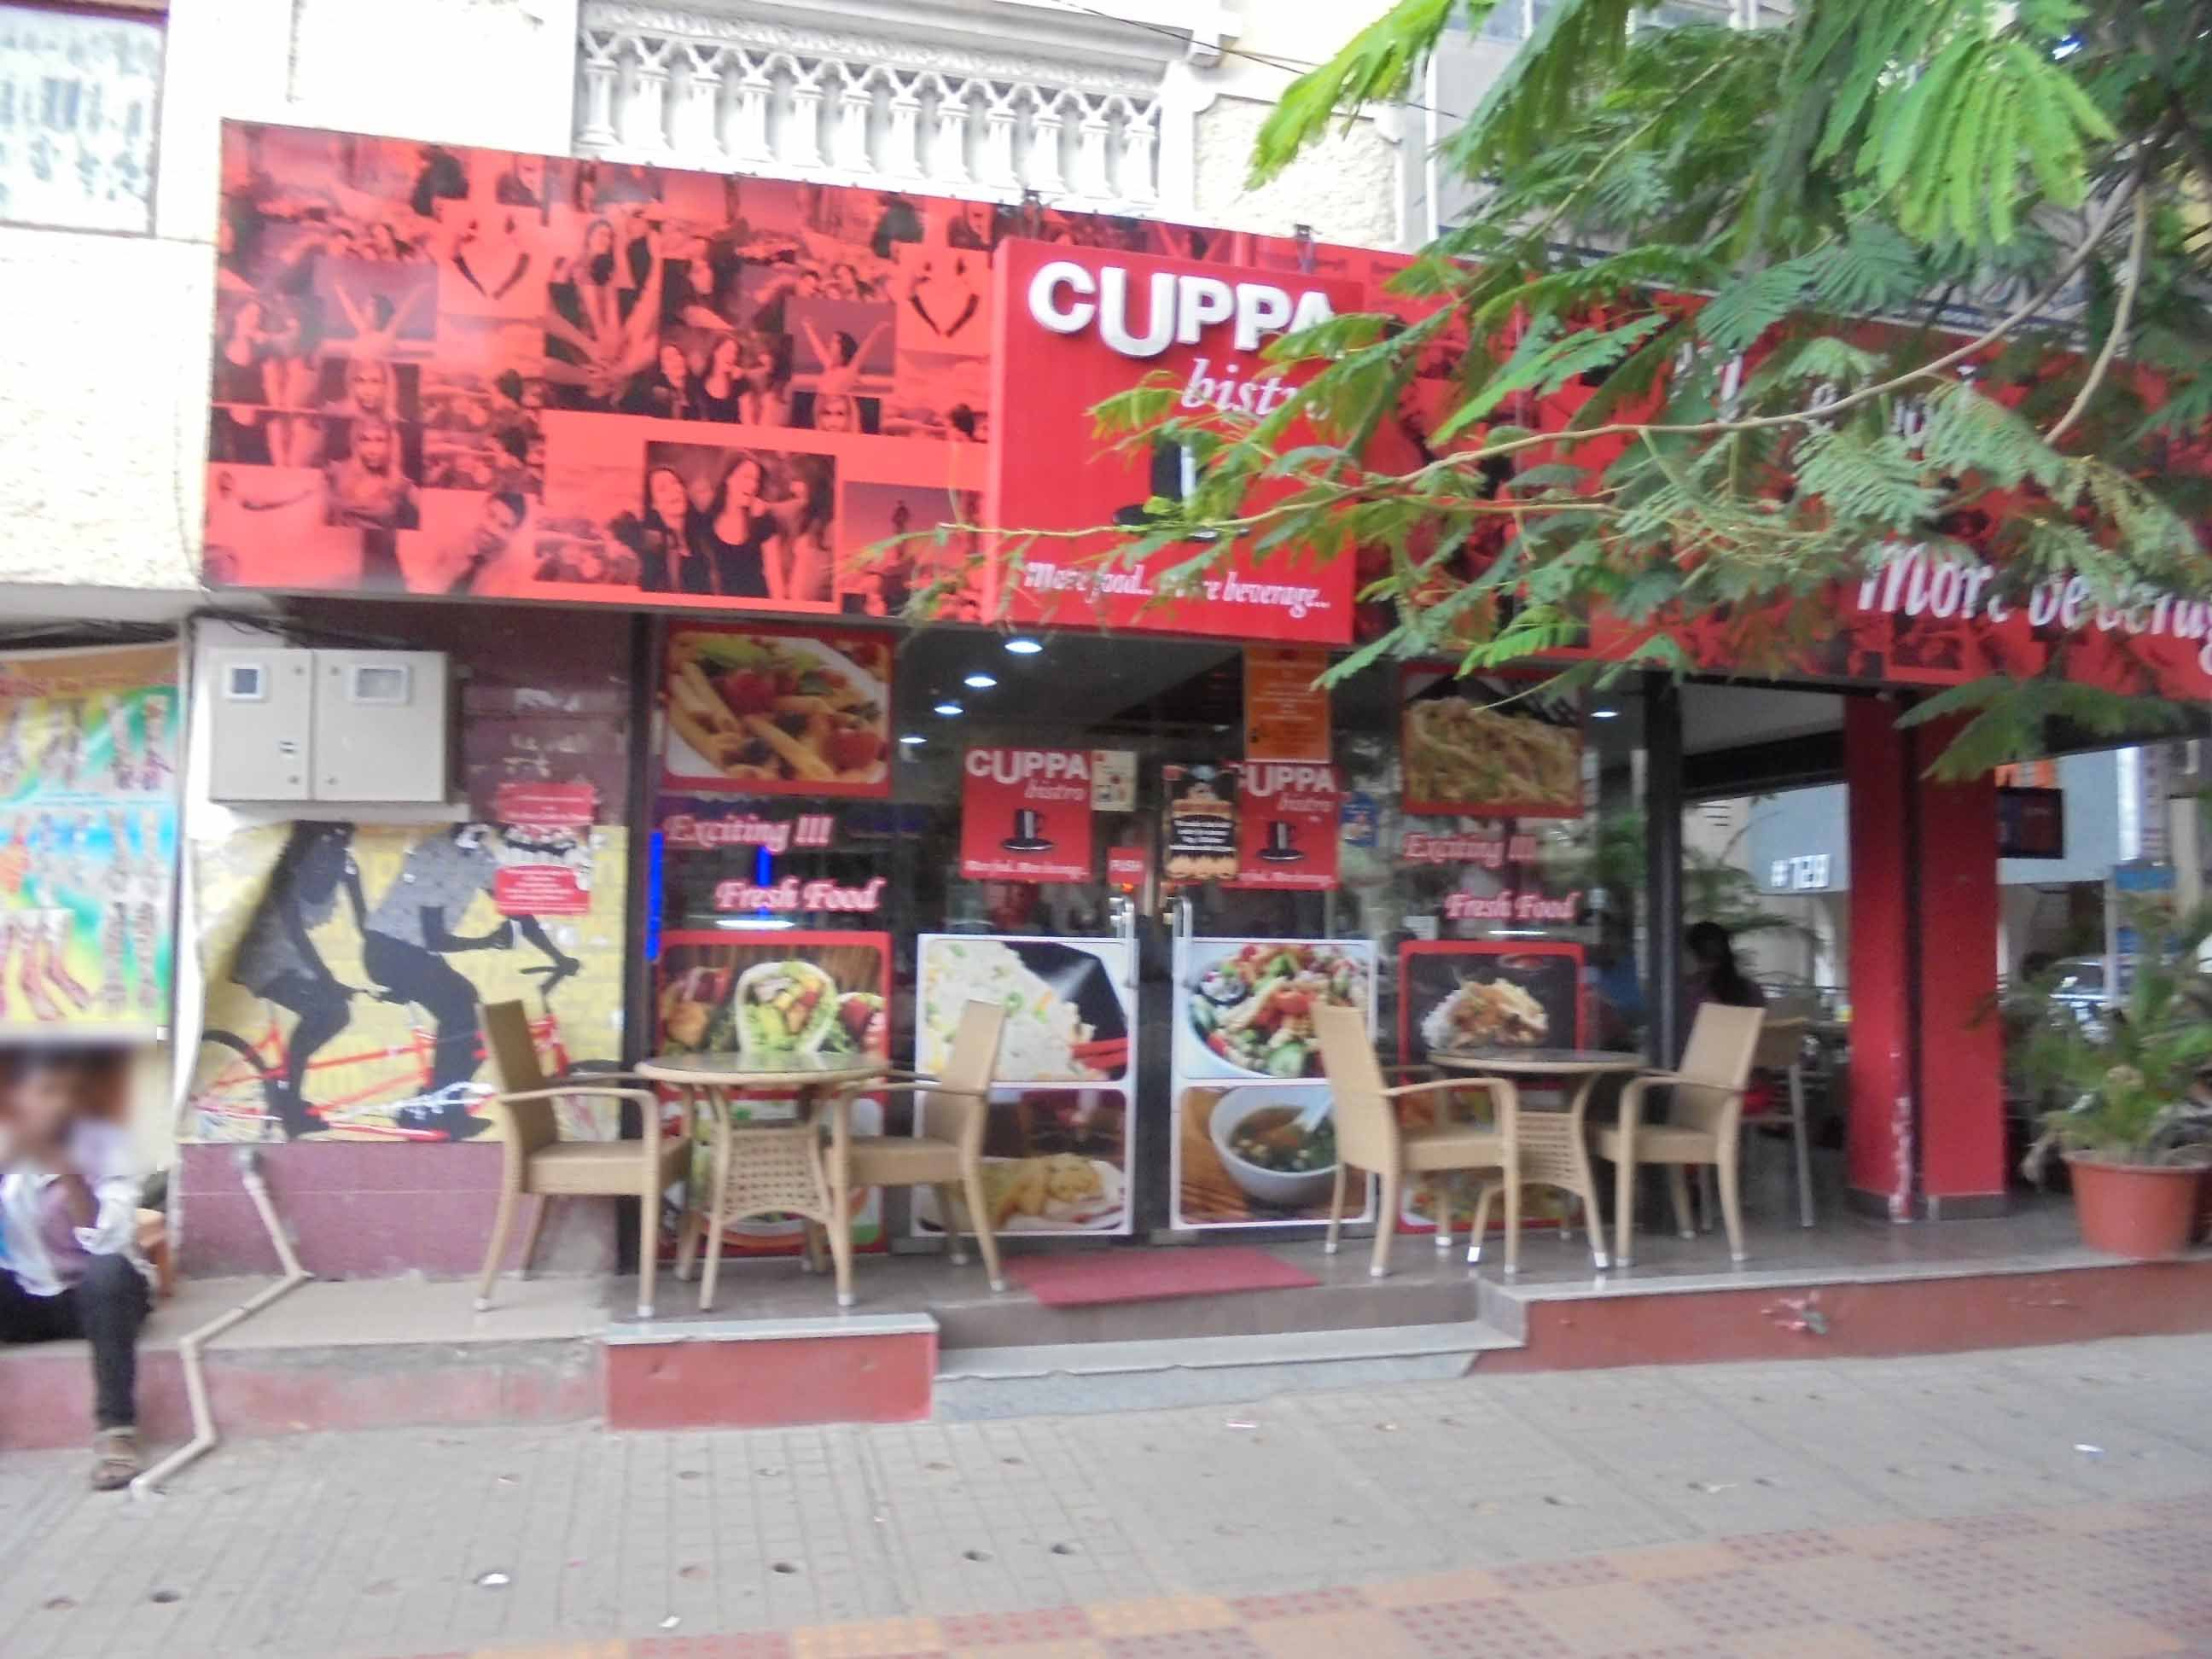 Cuppa btm layout bangalore photos images and